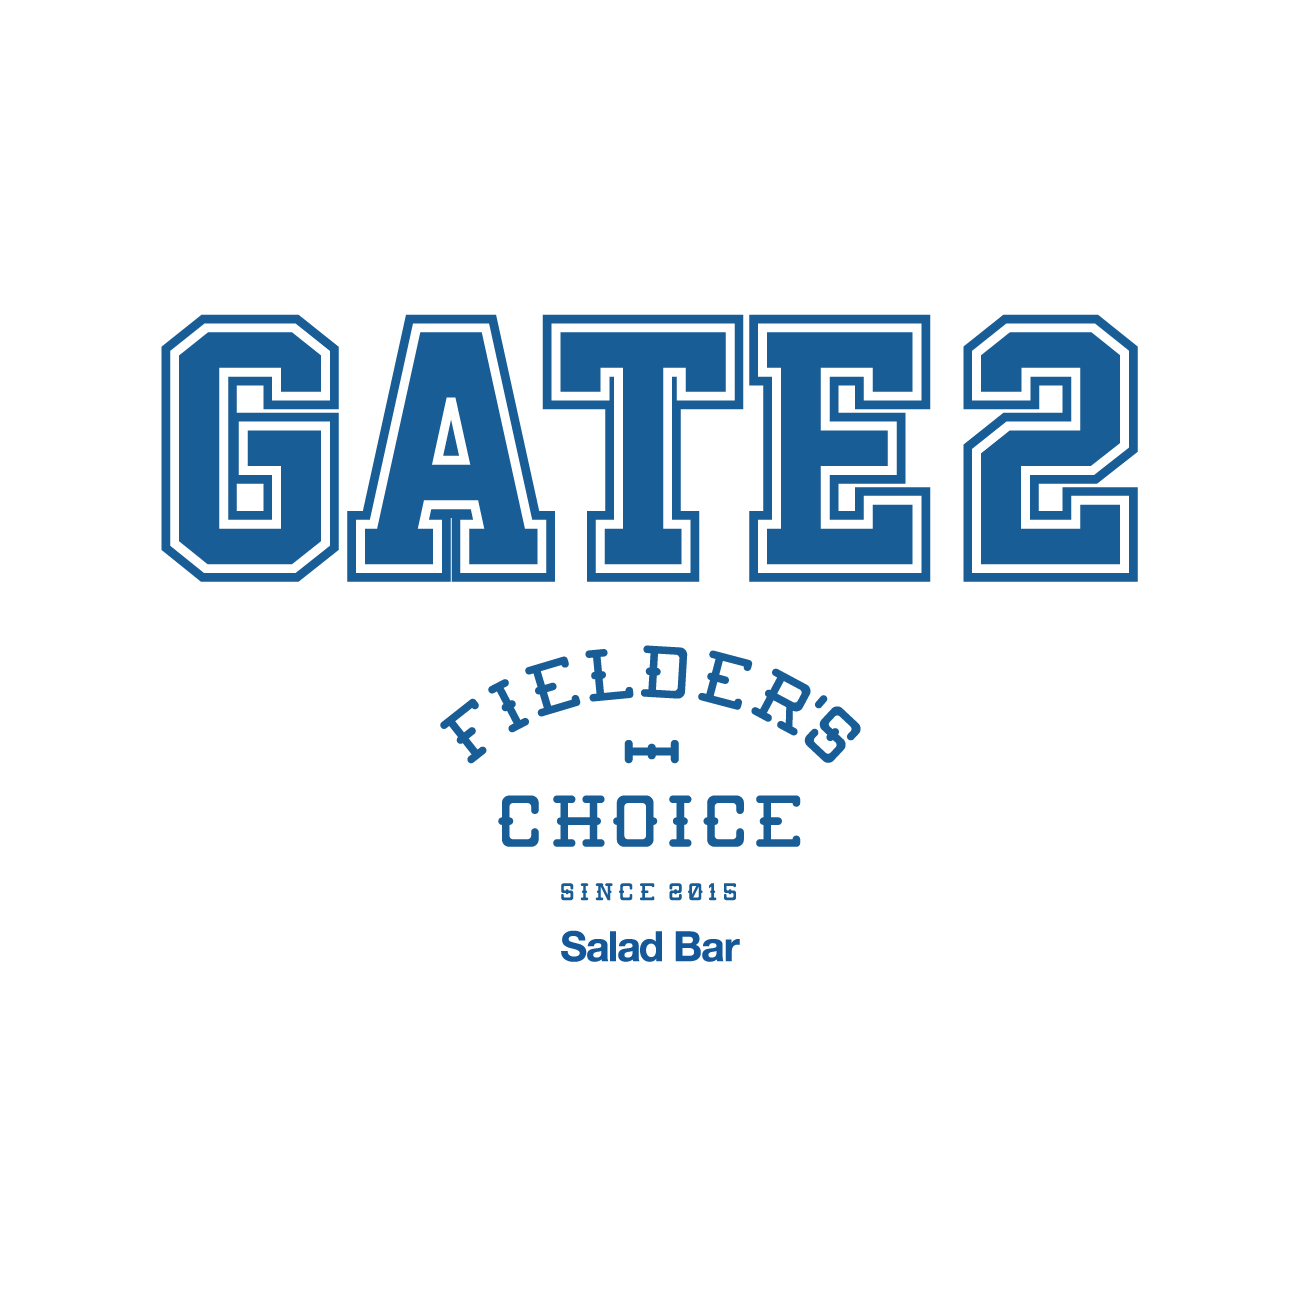 GATE2 Fileder'schoice GRAND FRONT